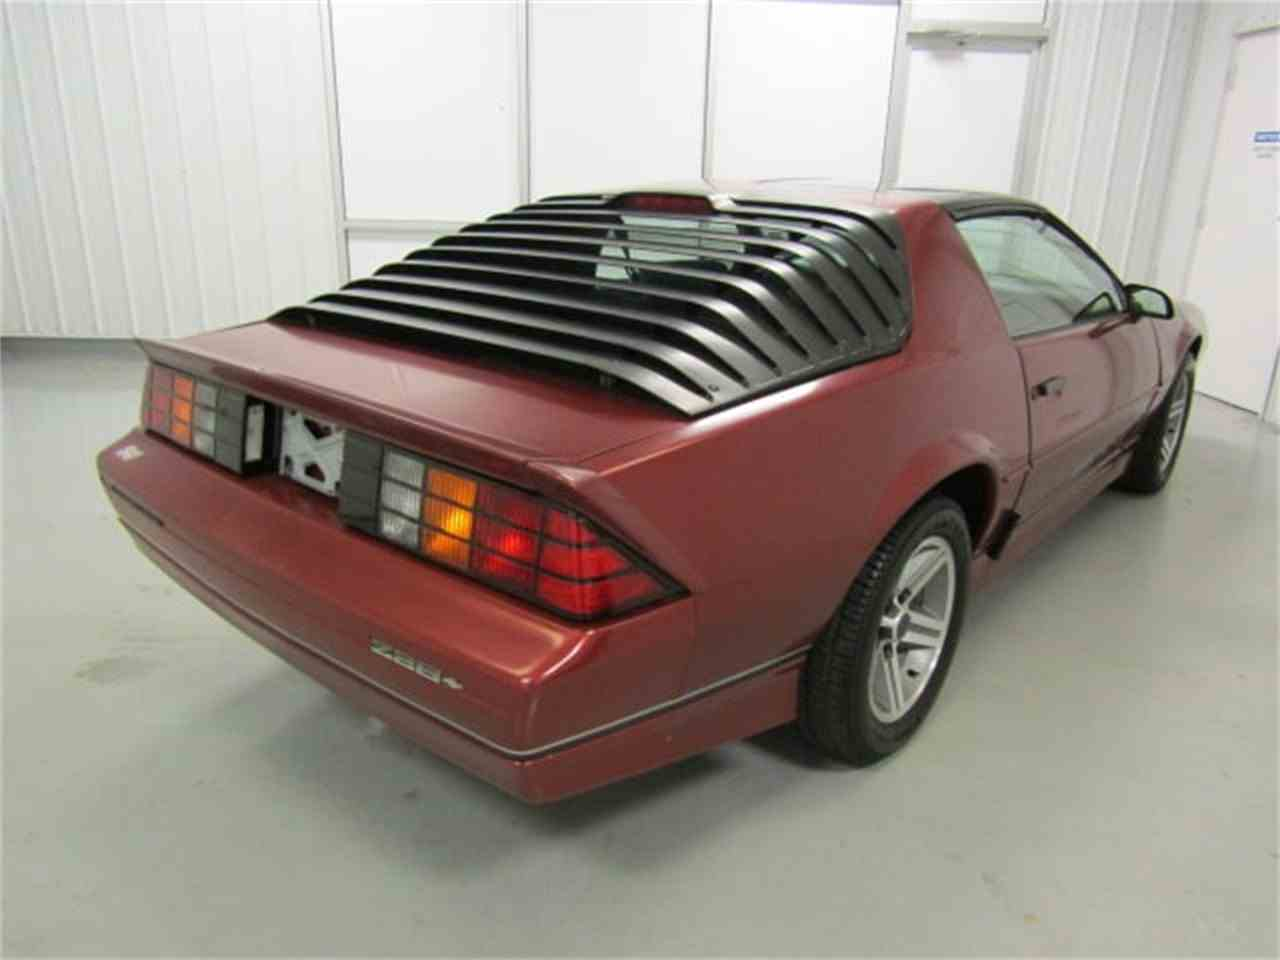 Large Picture of 1986 Chevrolet Camaro located in Virginia - $24,900.00 Offered by Duncan Imports & Classic Cars - JLAE